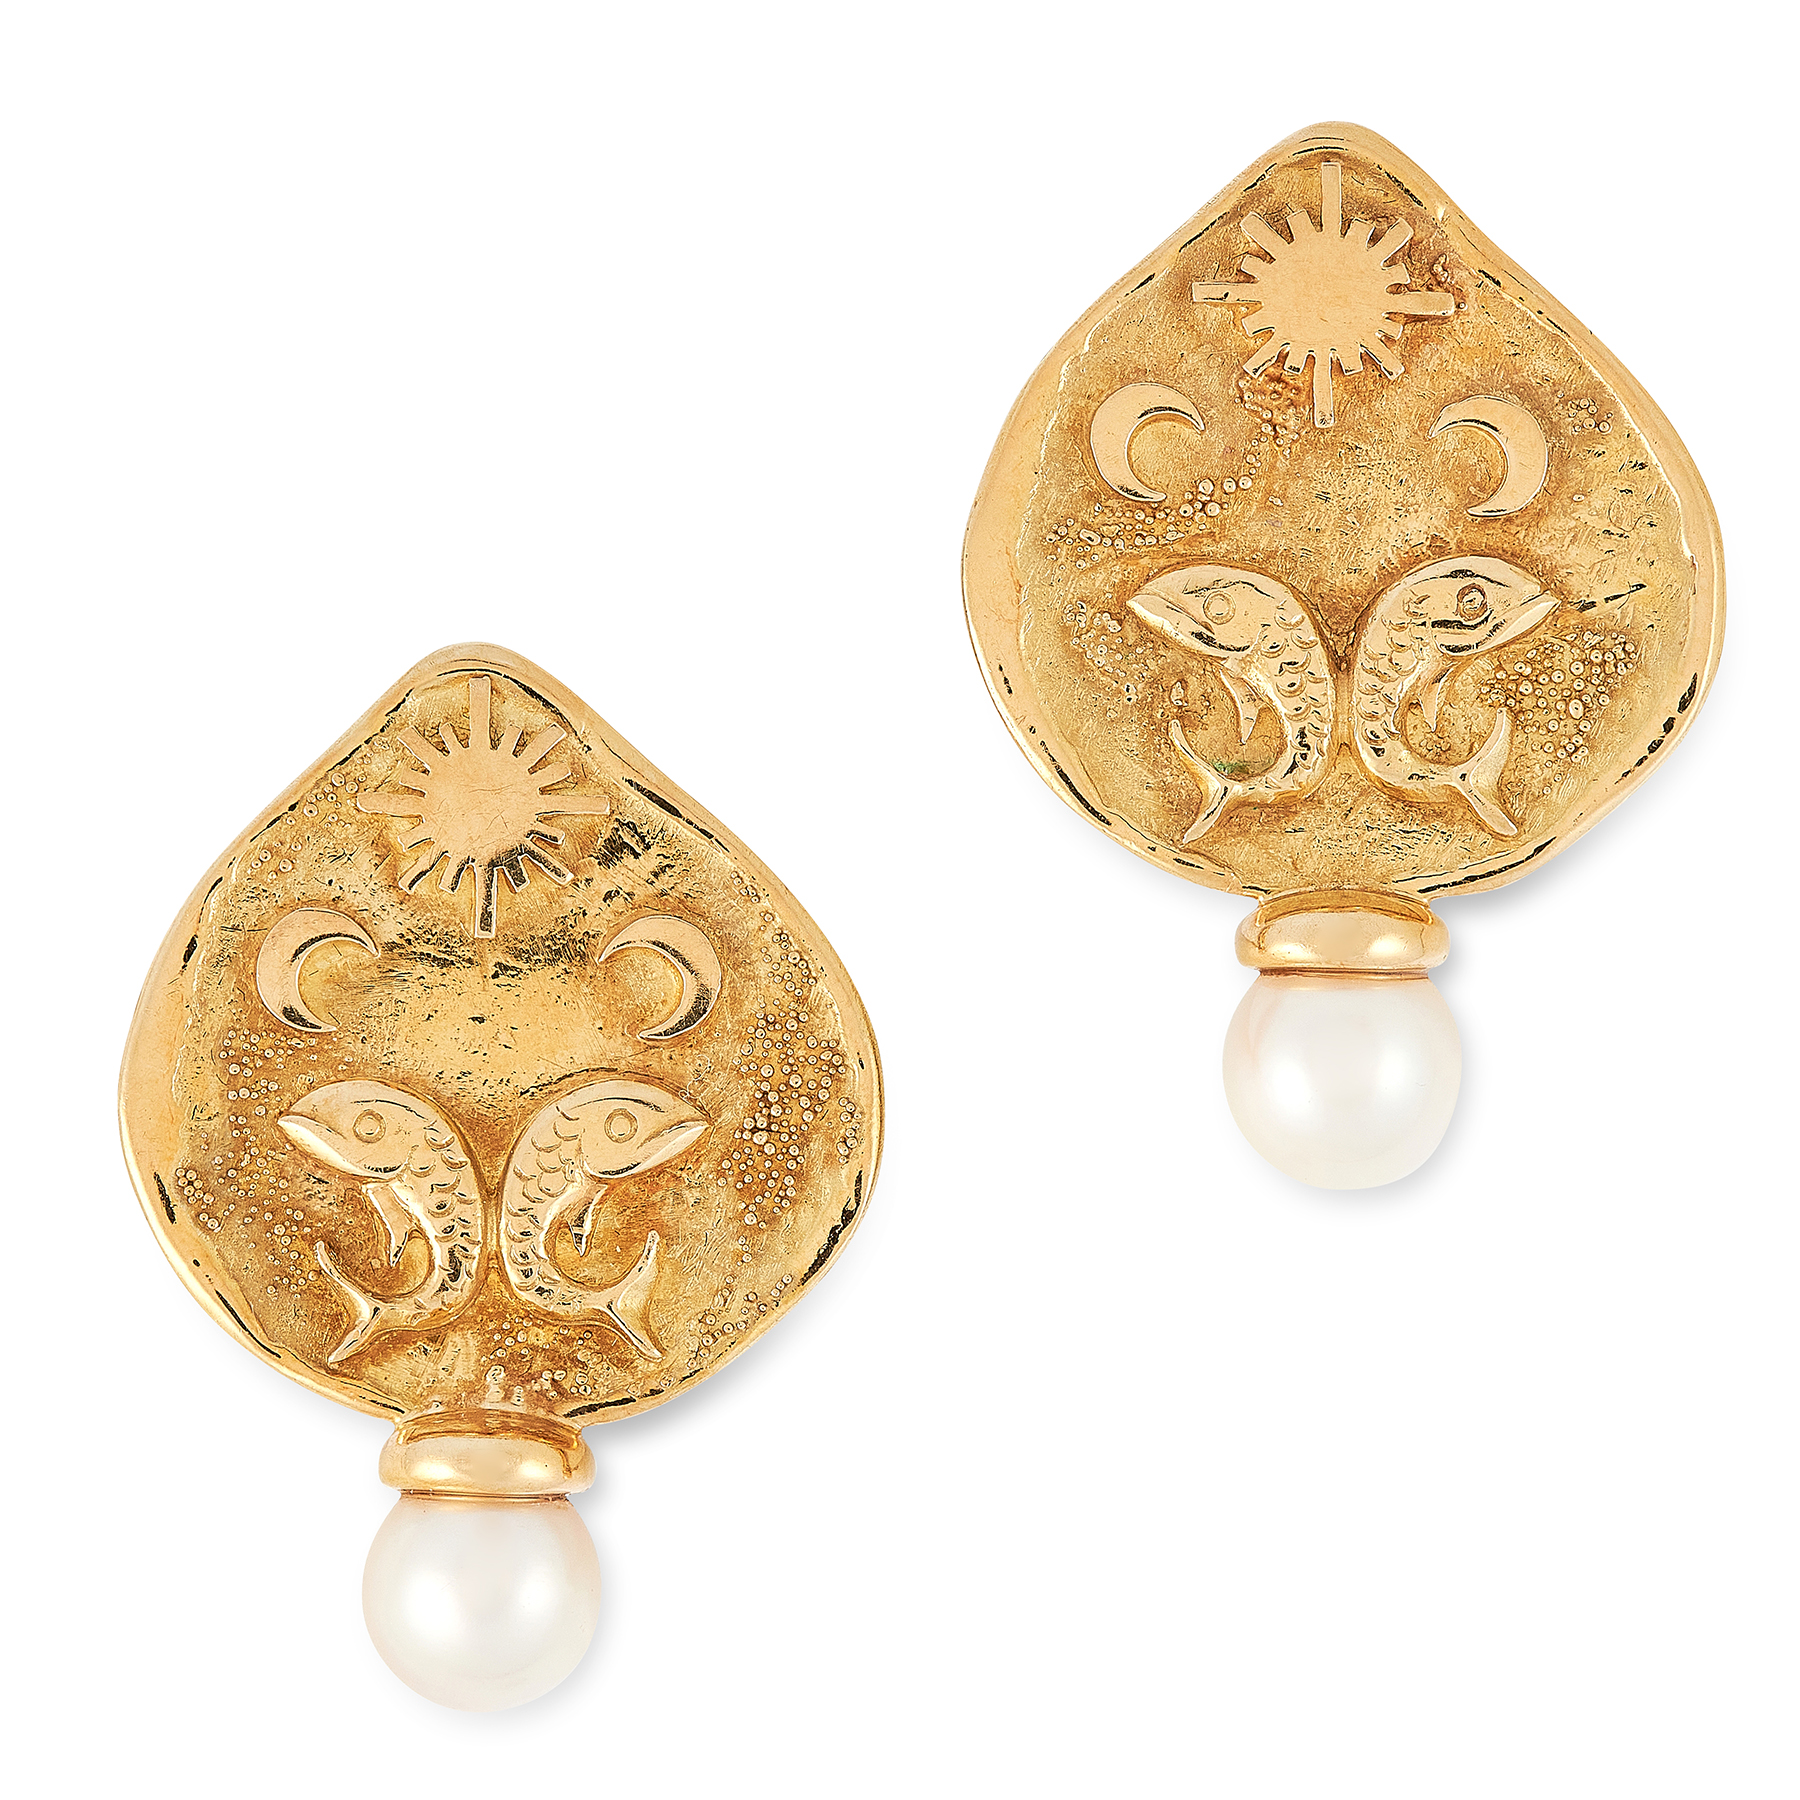 A PAIR OF ZODIAC PEARL CLIP EARRINGS, ELIZABETH GAGE 1994 in 18ct yellow gold, the face of each